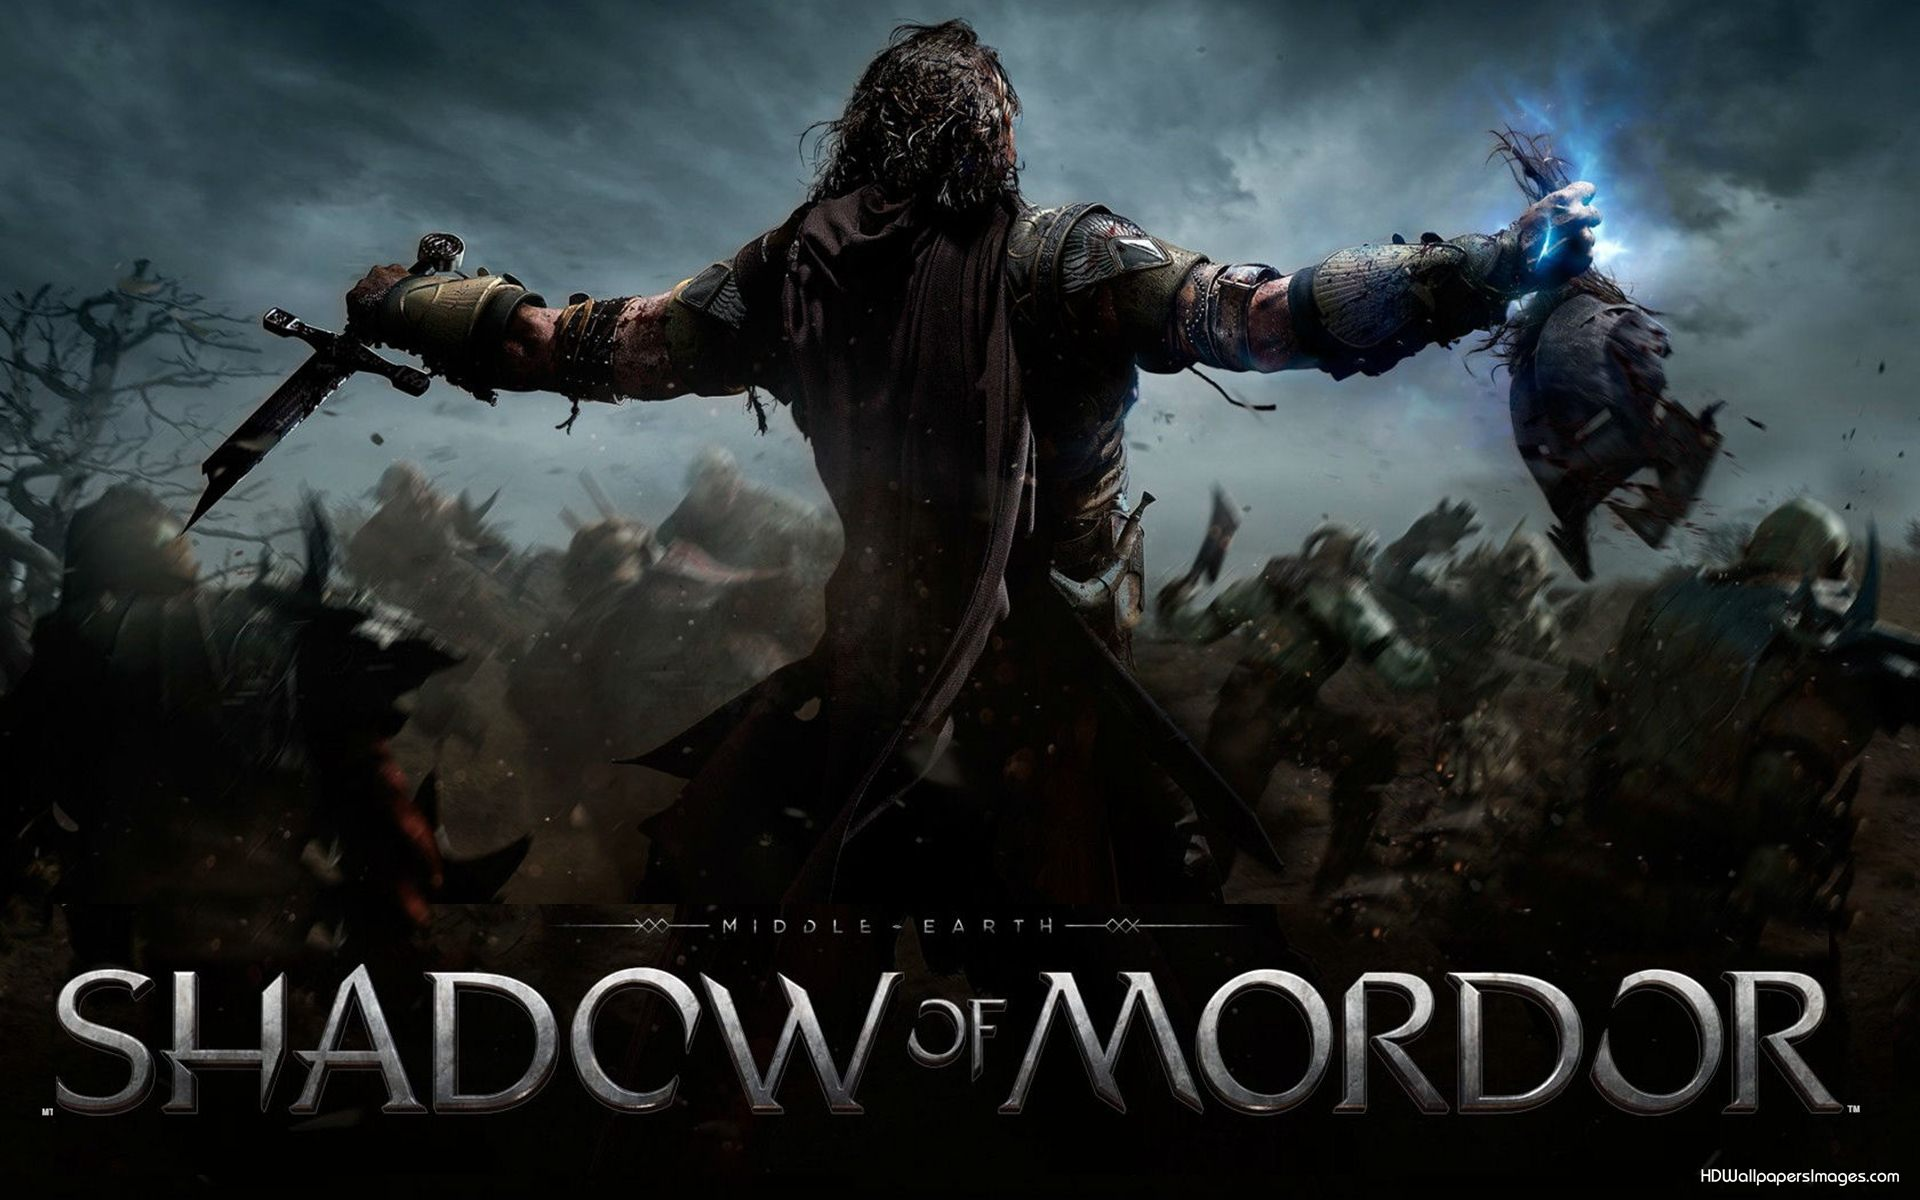 Middle-Earth: Shadow of Mordor | Nothing Is True